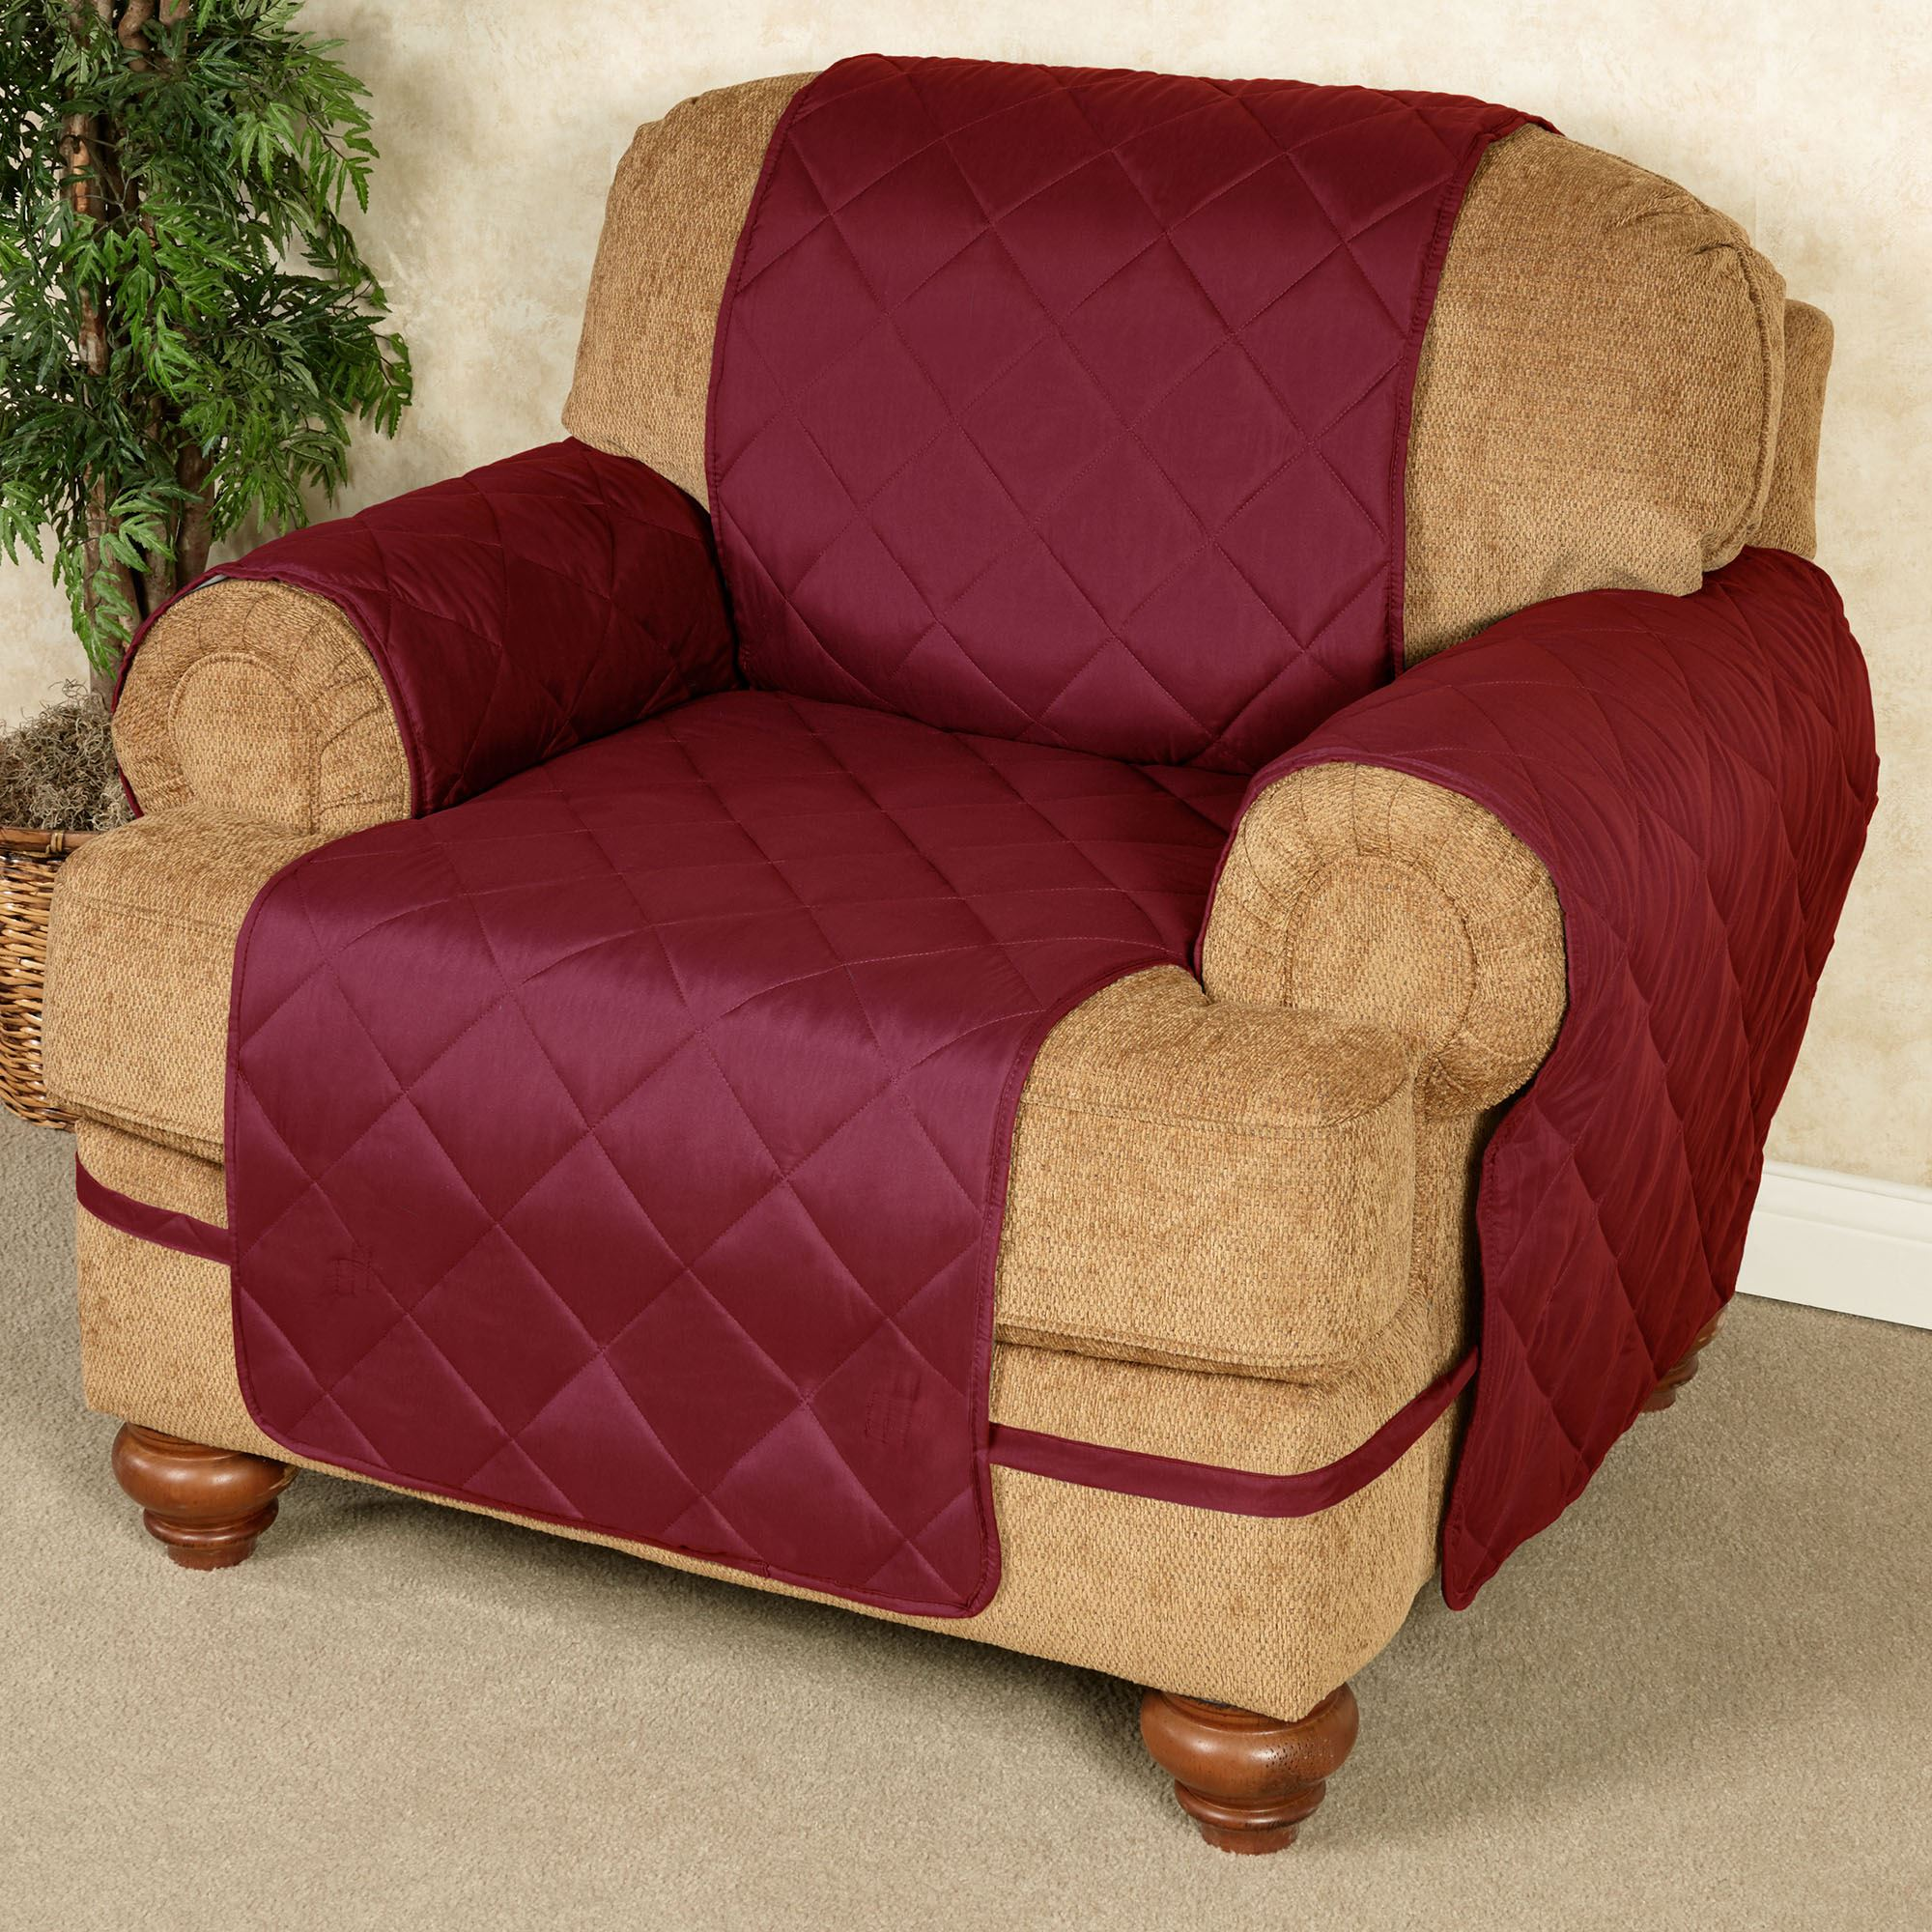 Charmant Ultimate Microfiber Furniture Protector Cover Chair